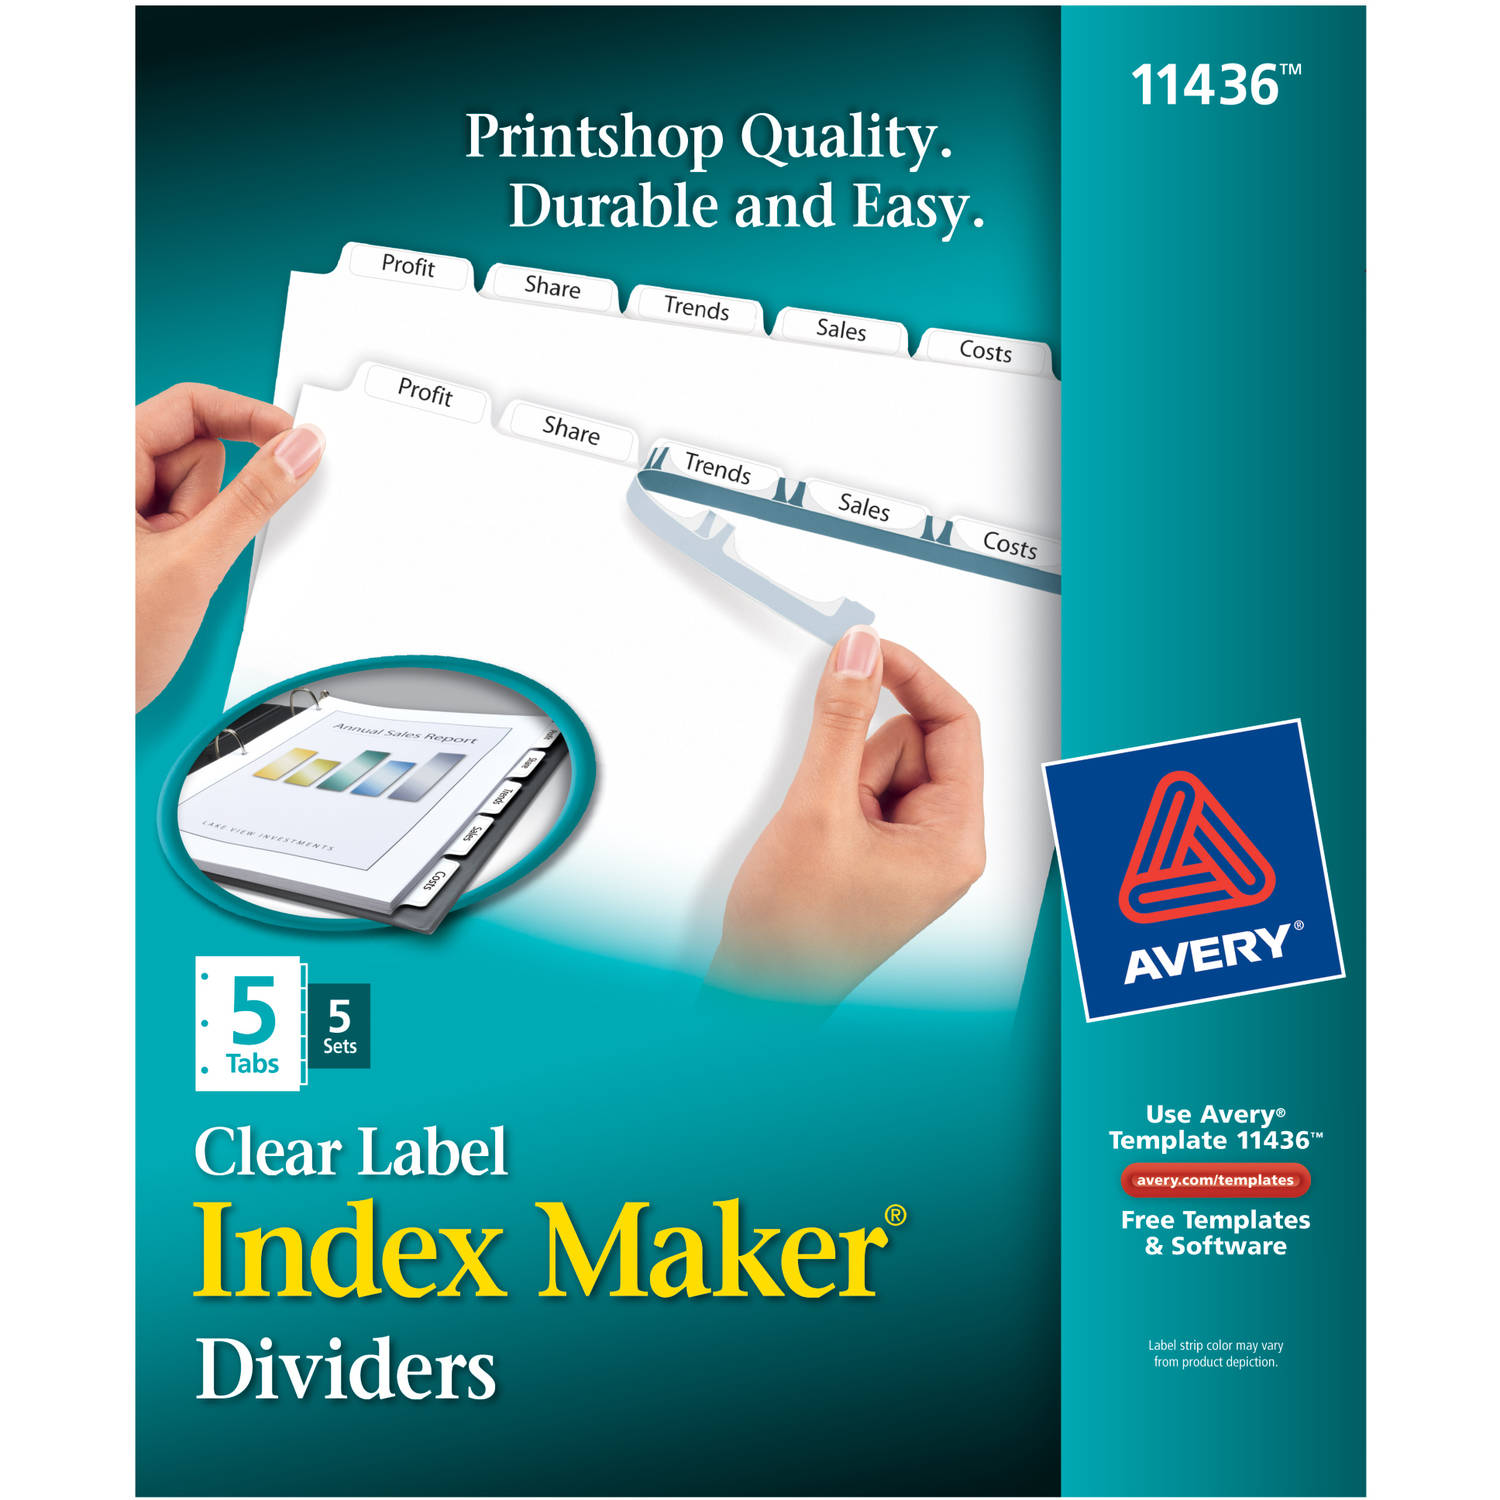 Avery Index Maker Clear Label Dividers 11436, 5-Tab, 5 Sets, White